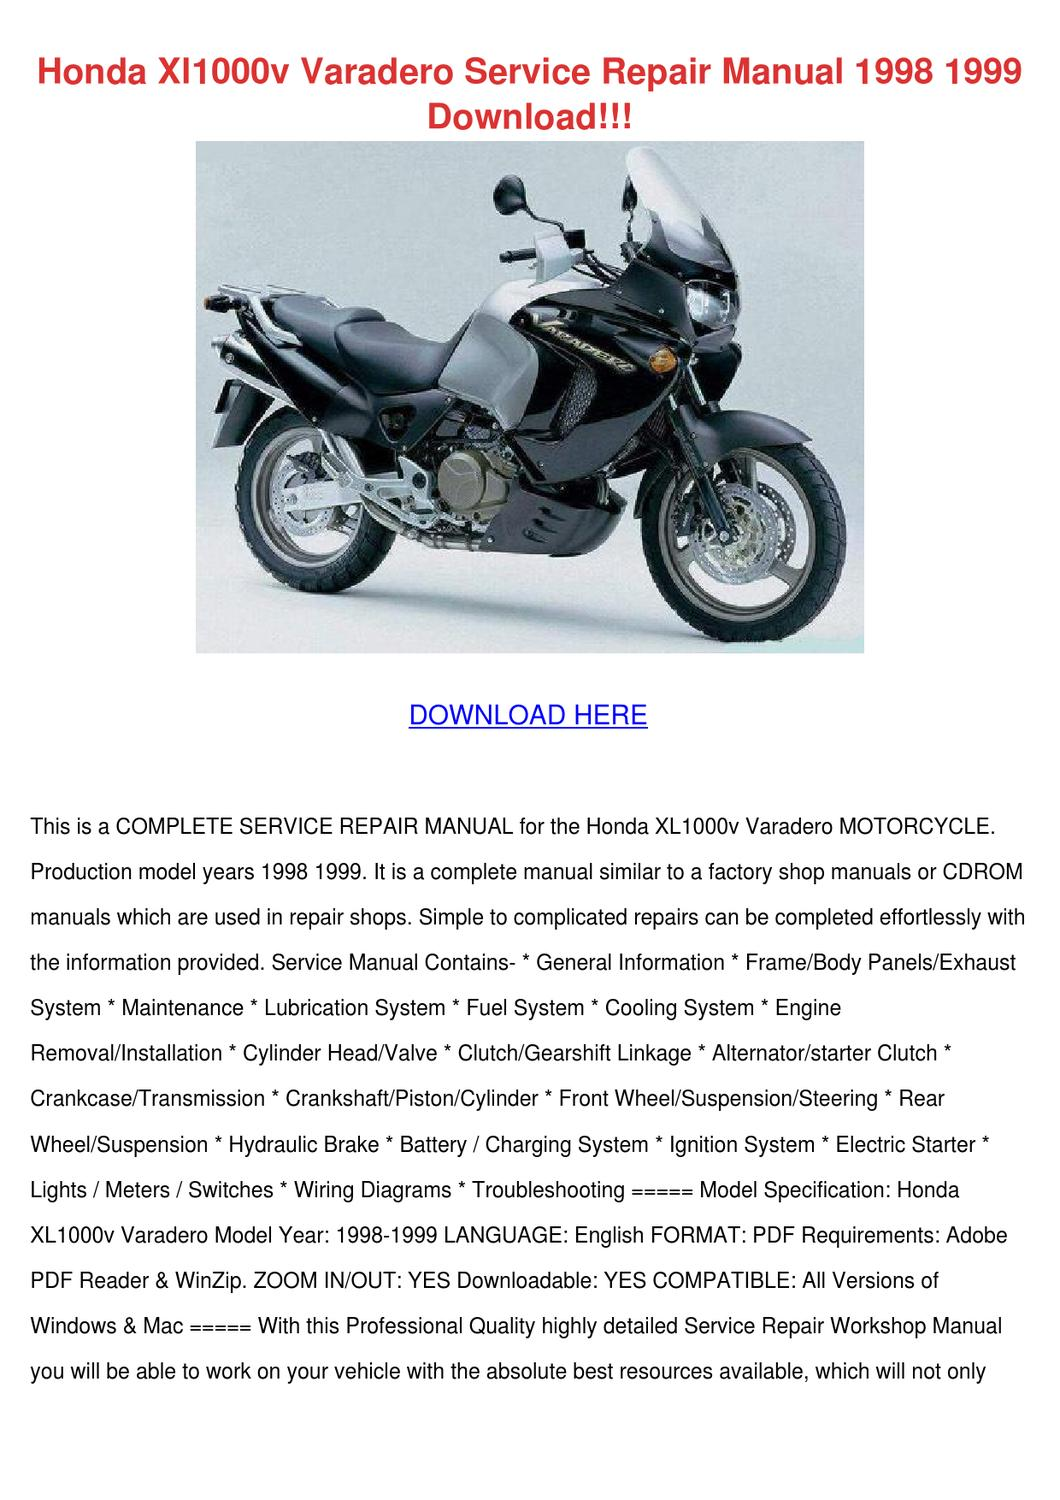 Honda Xl1000v Varadero Service Repair Manual By